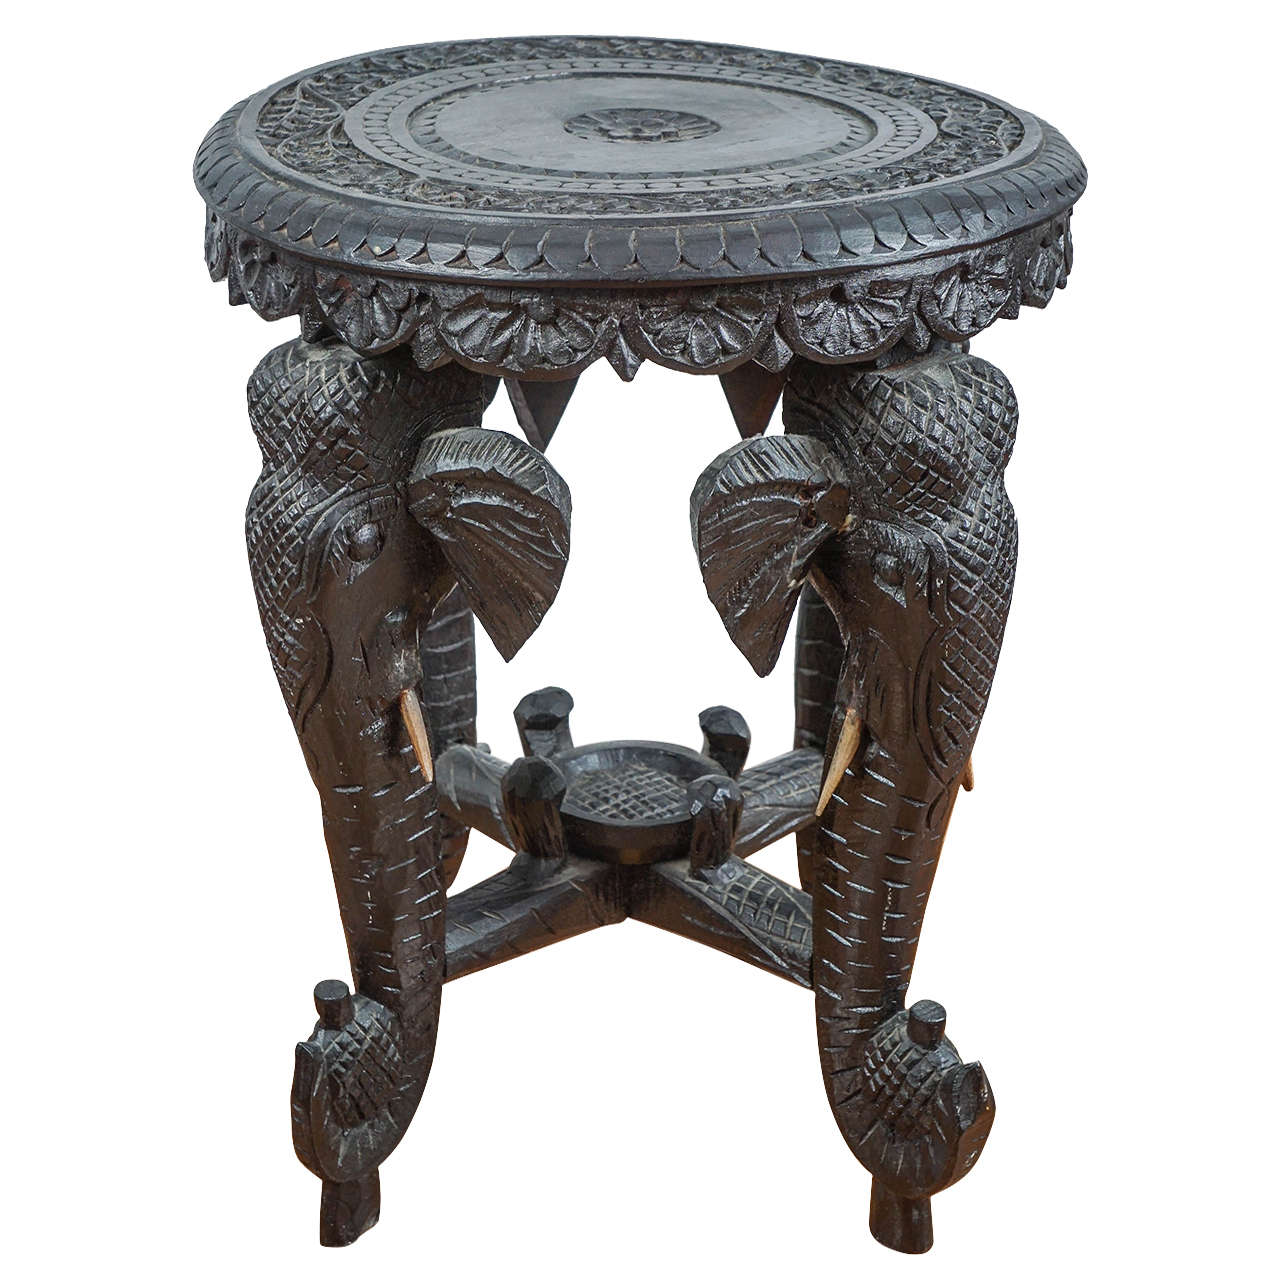 indian carved hardwood elephant stool at stdibs - indian carved hardwood elephant stool